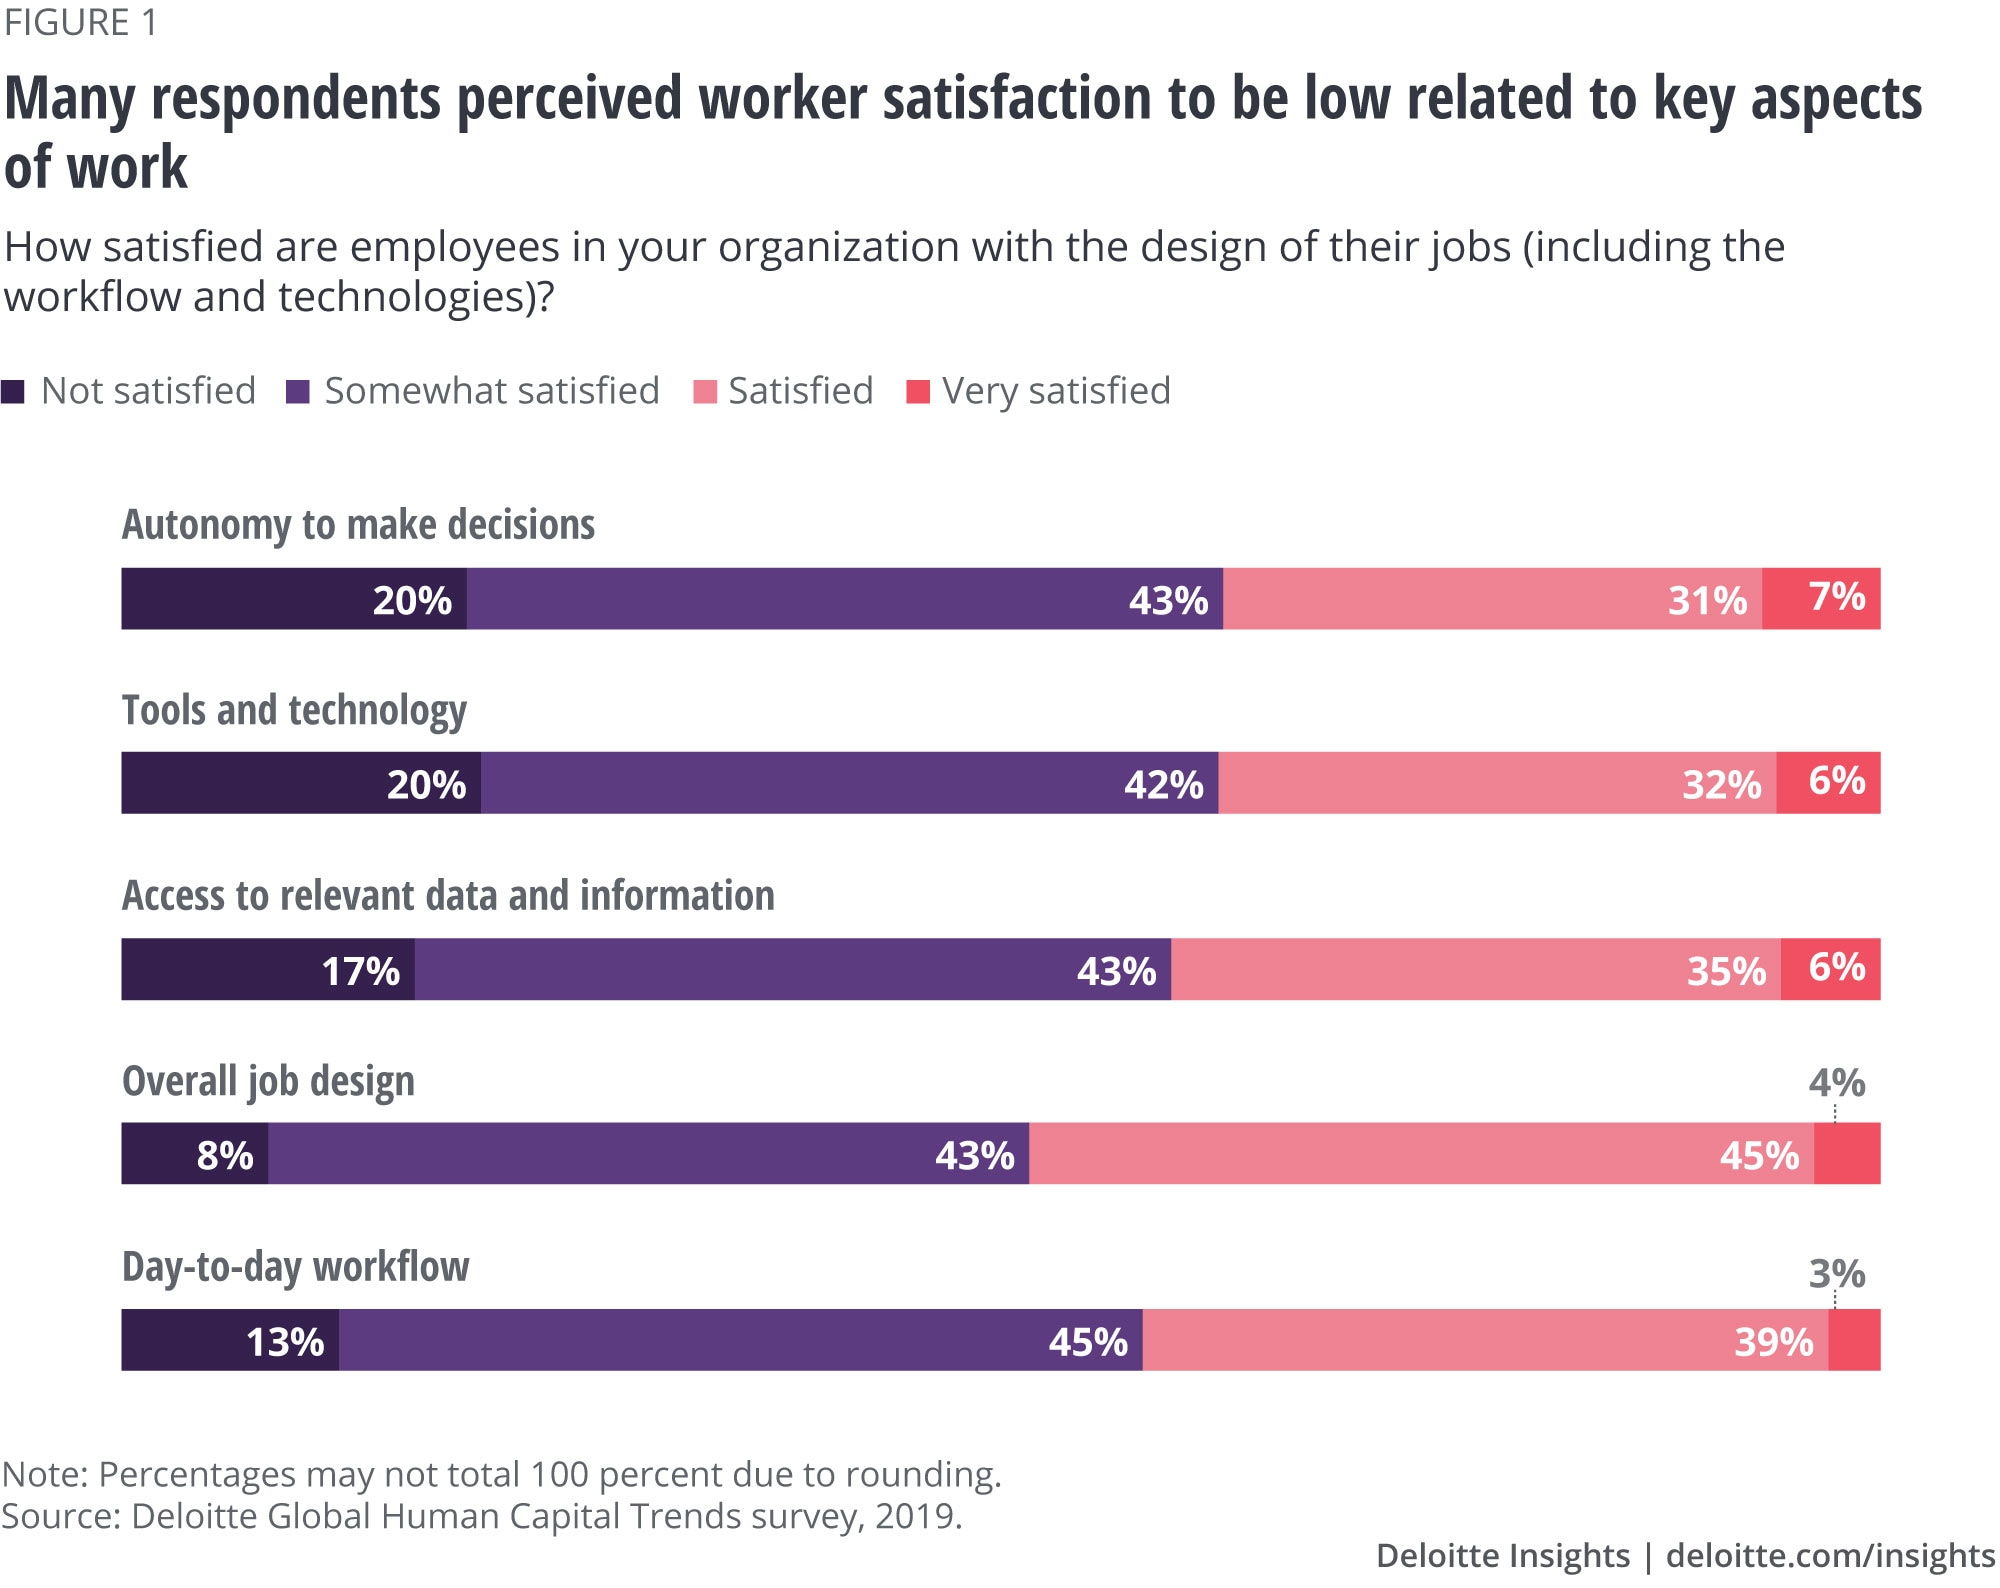 Many respondents perceived worker satisfaction to be low related to key aspects of work